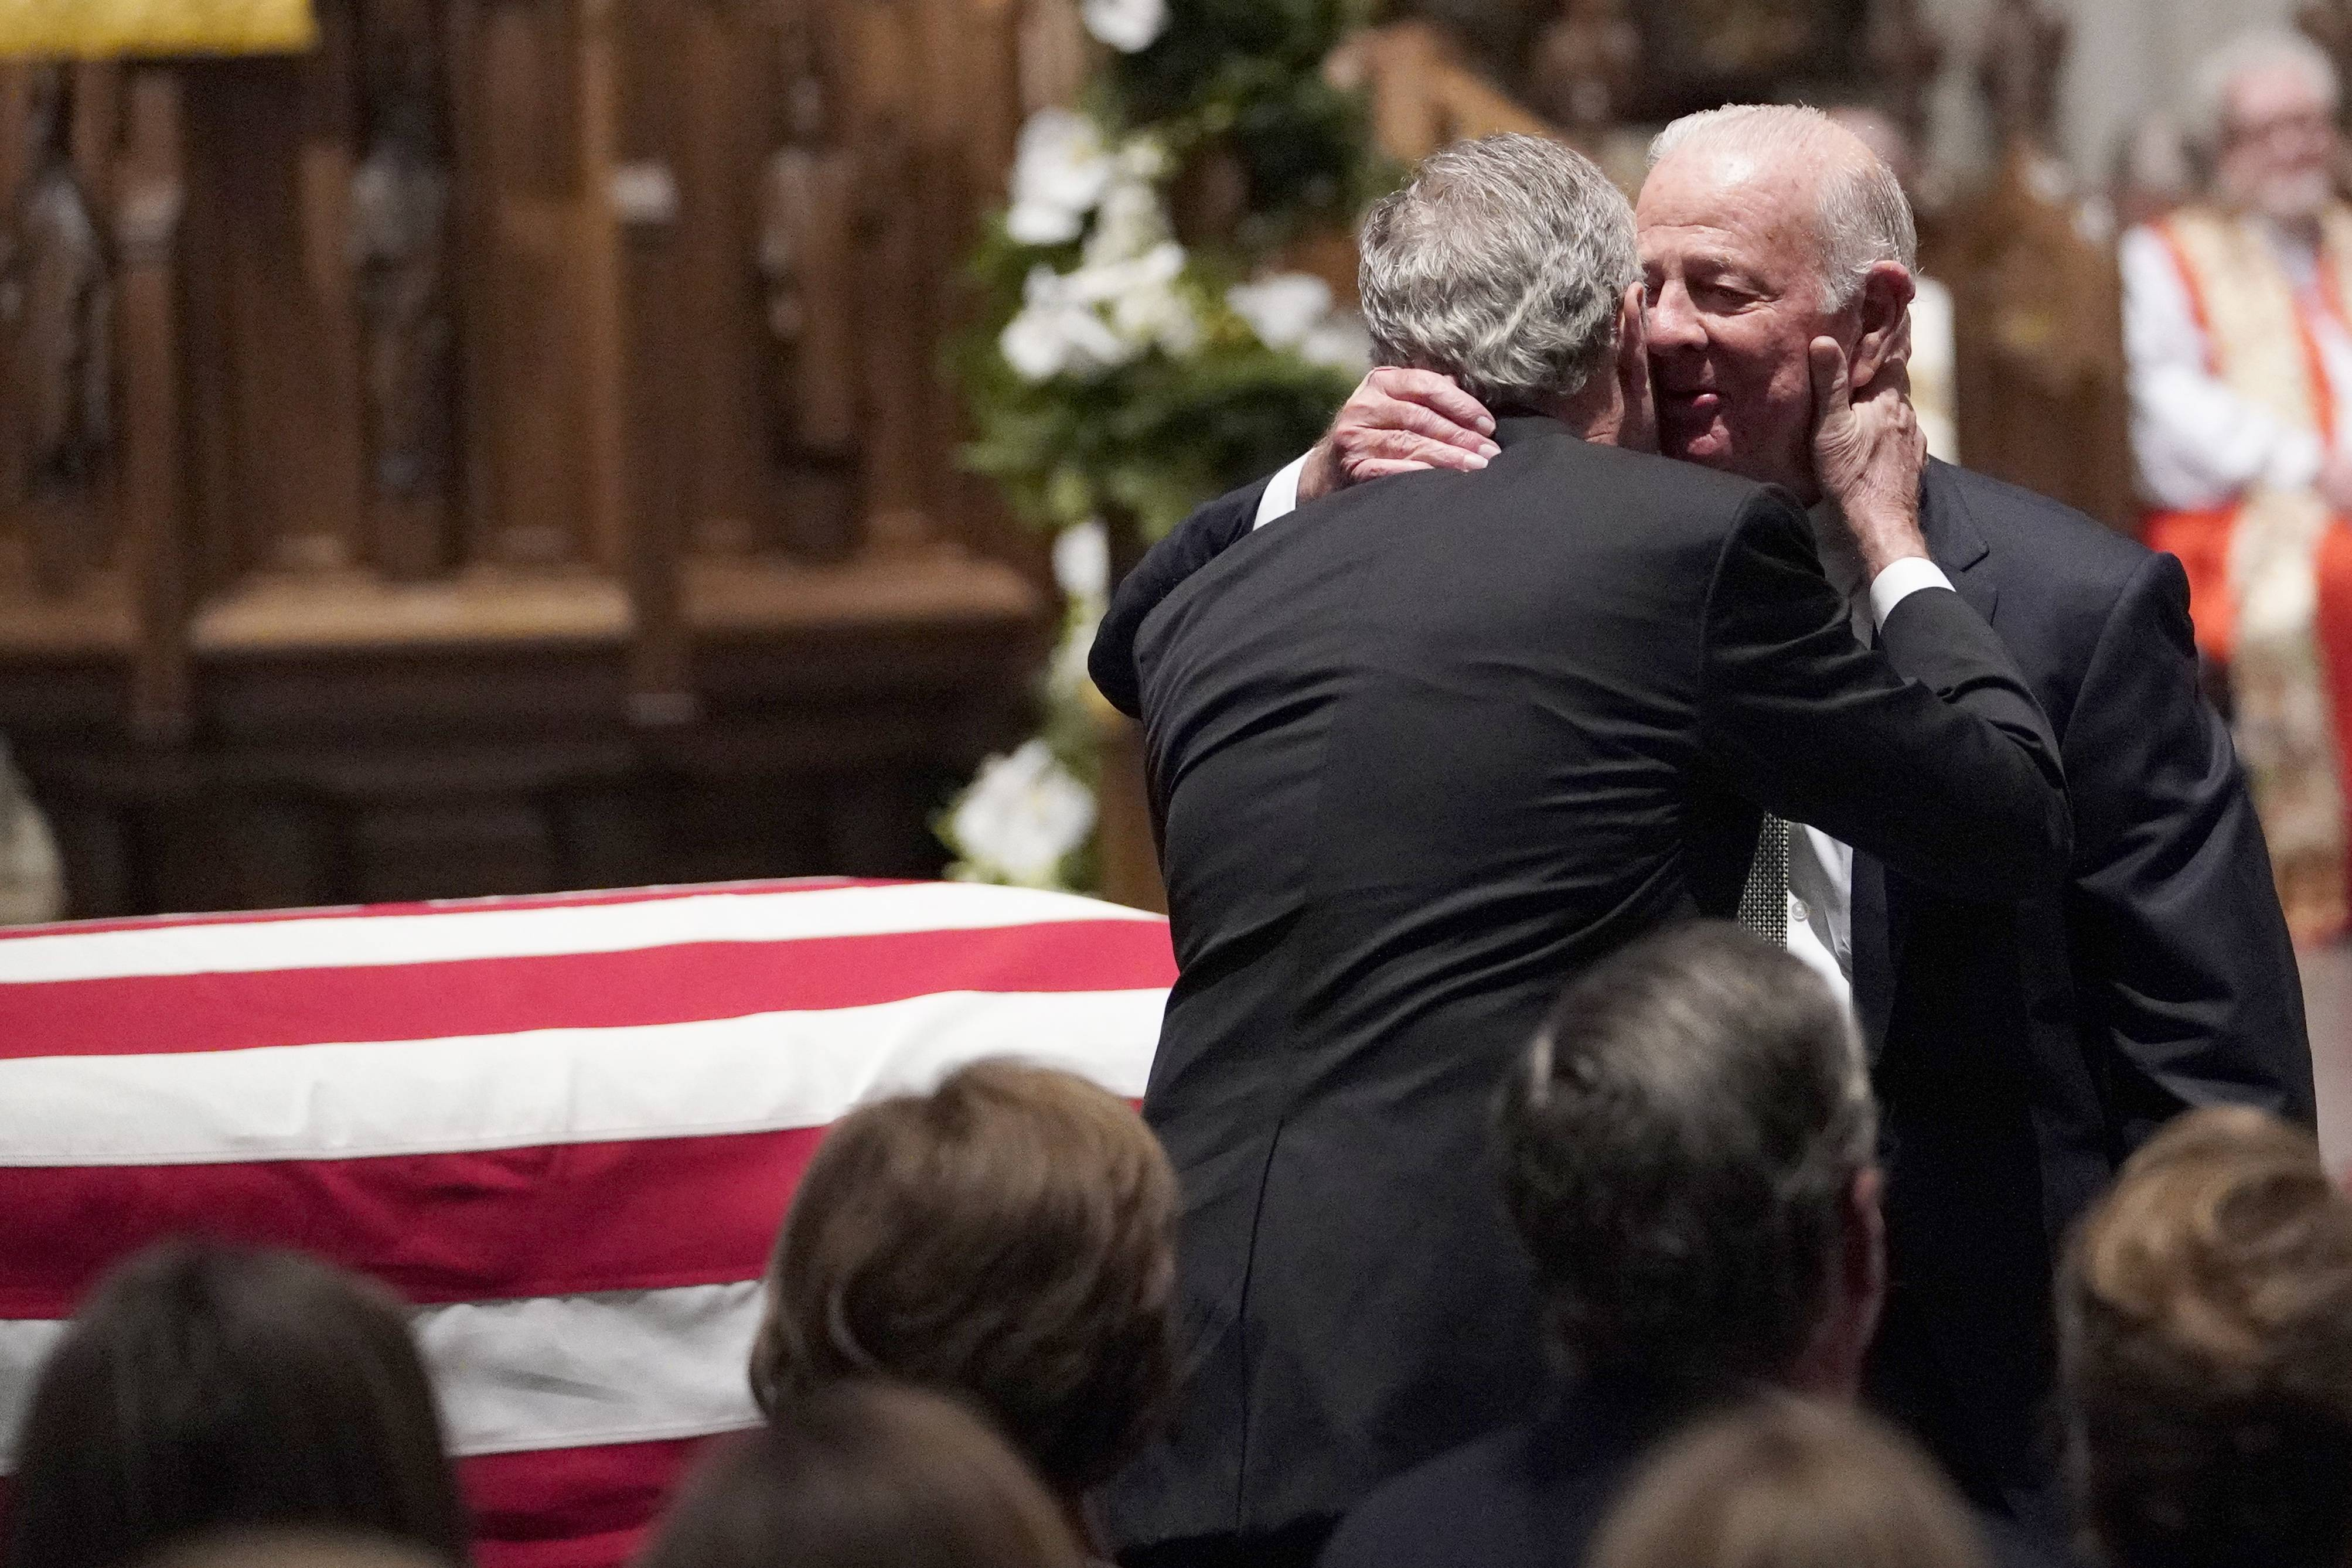 Former President George W. Bush embraces former Secretary of State James Baker, right, Thursday after he gave a eulogy during the funeral for former President George H.W. Bush at St. Martin's Episcopal Church in Houston.